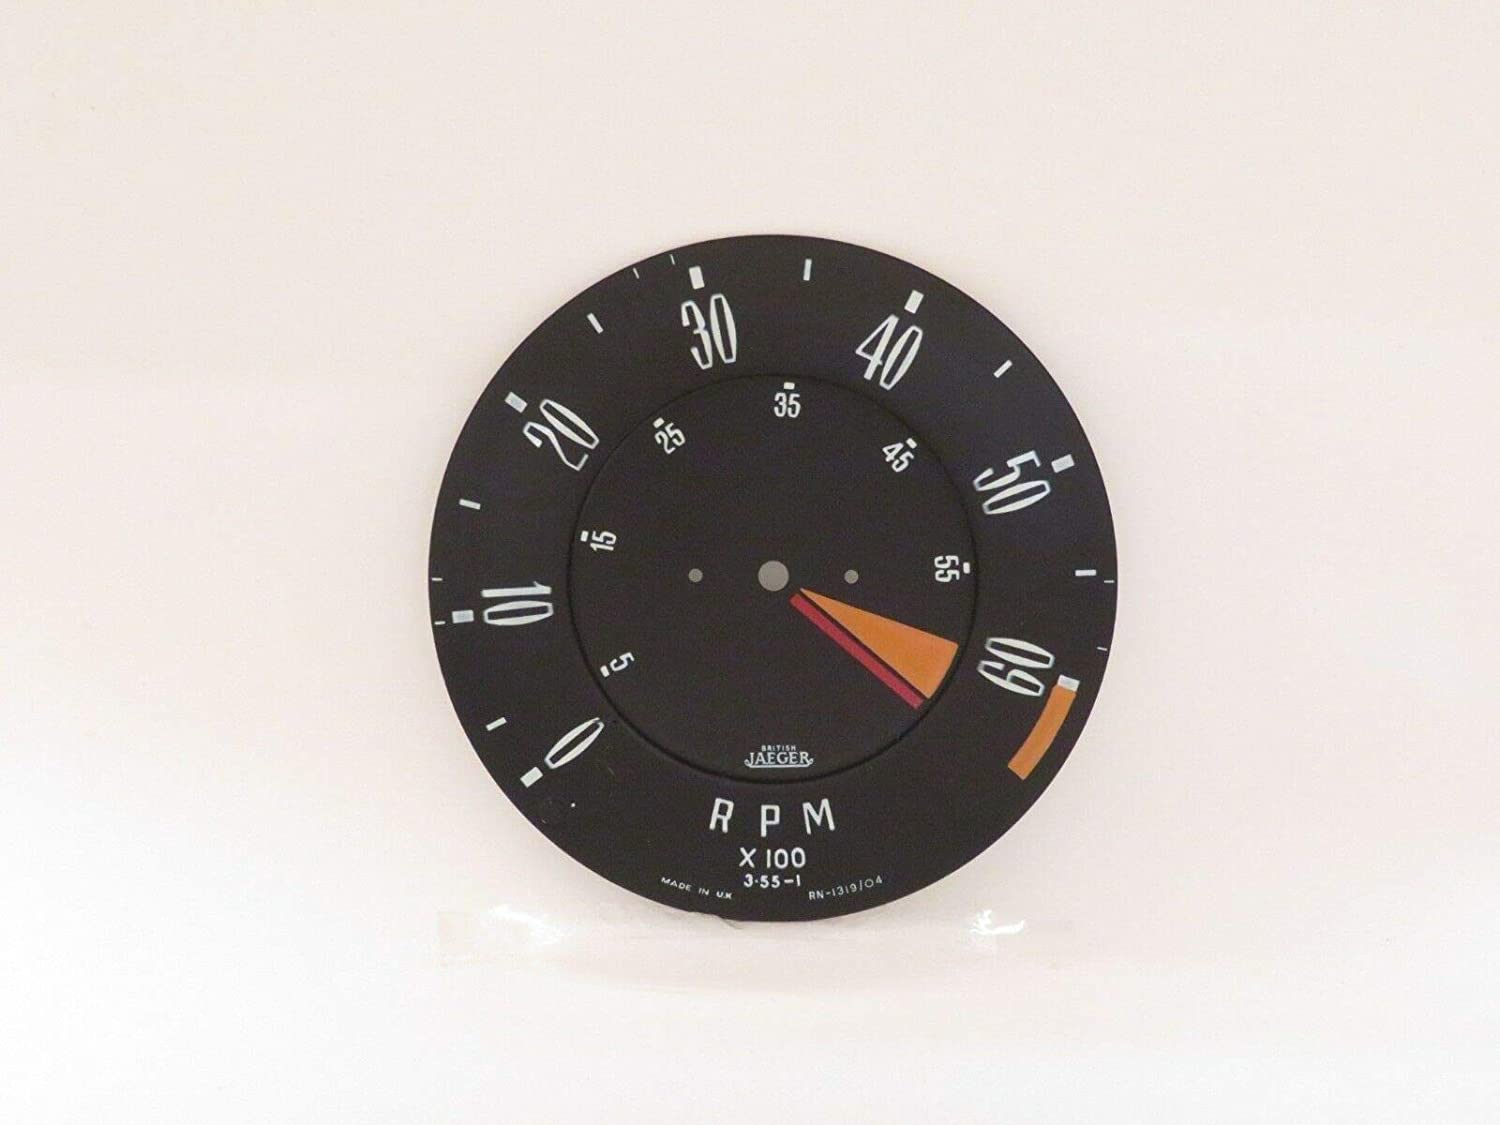 EPC Tachometer Charlotte Mall Dial Max 83% OFF Face Plate Triumph Jaeger Spitfire Fits New